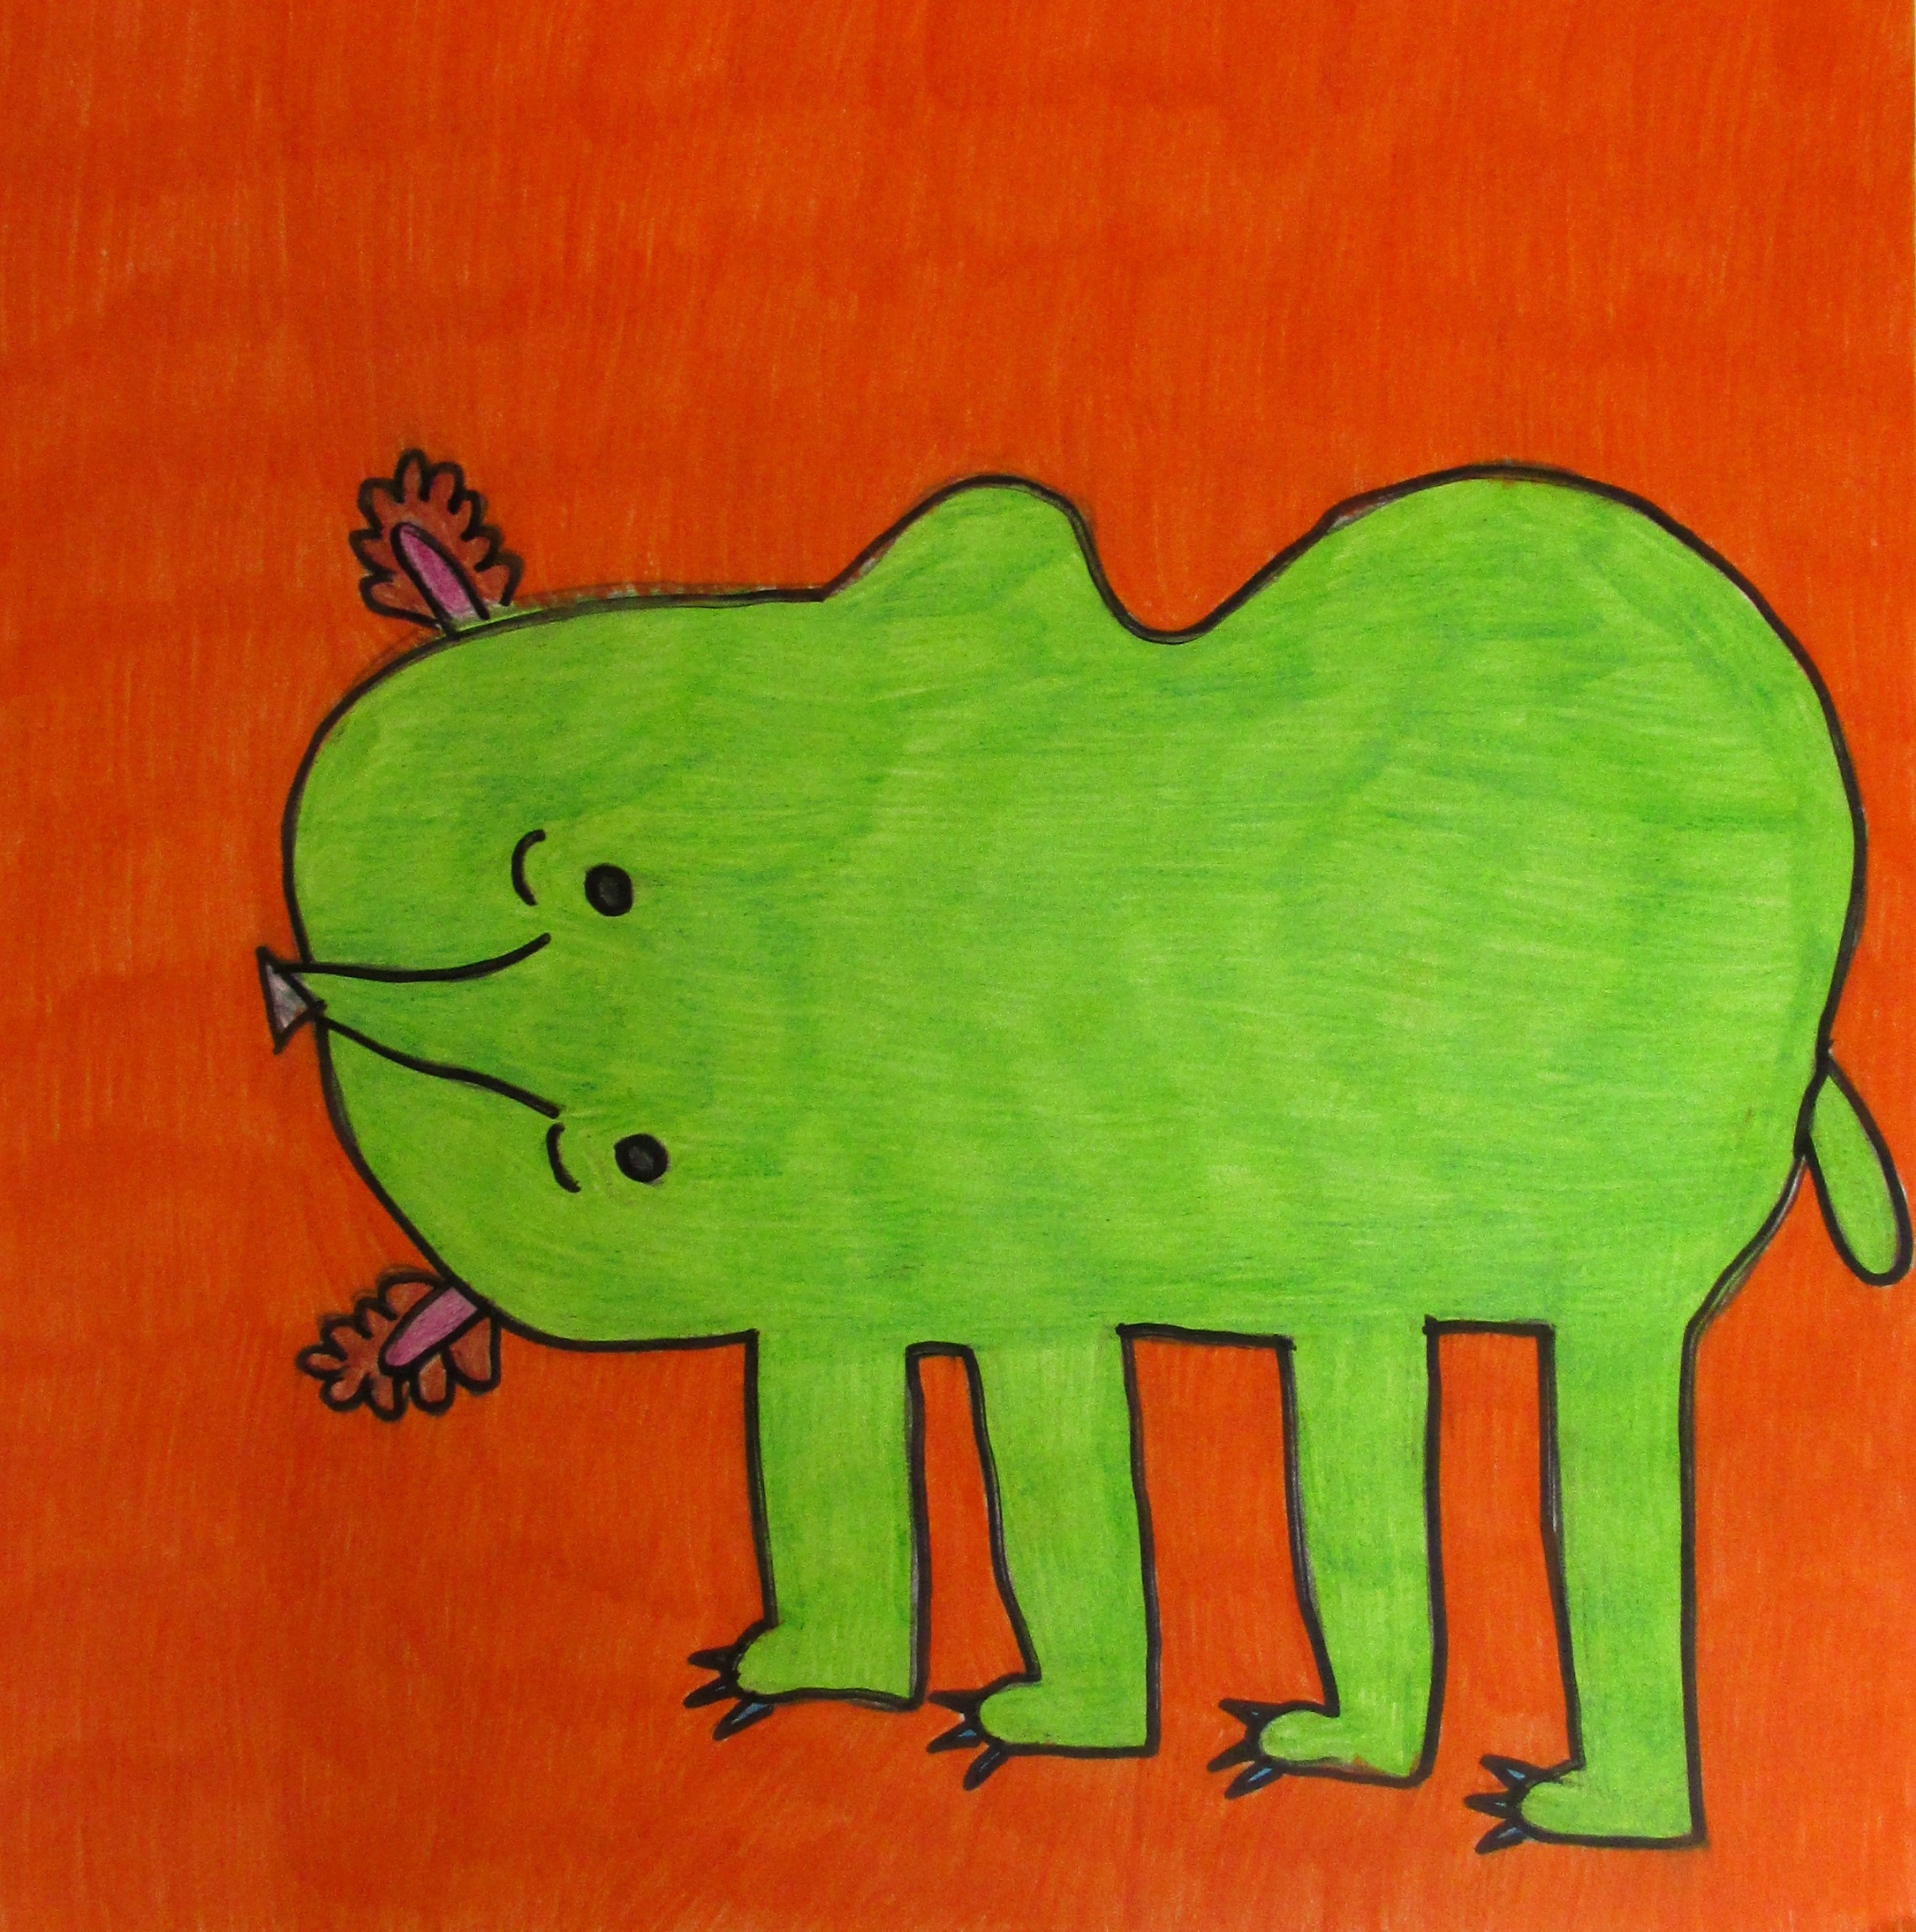 Donna Sarazin, The Huge Bear Plays, Colored Pencil and Sharpie